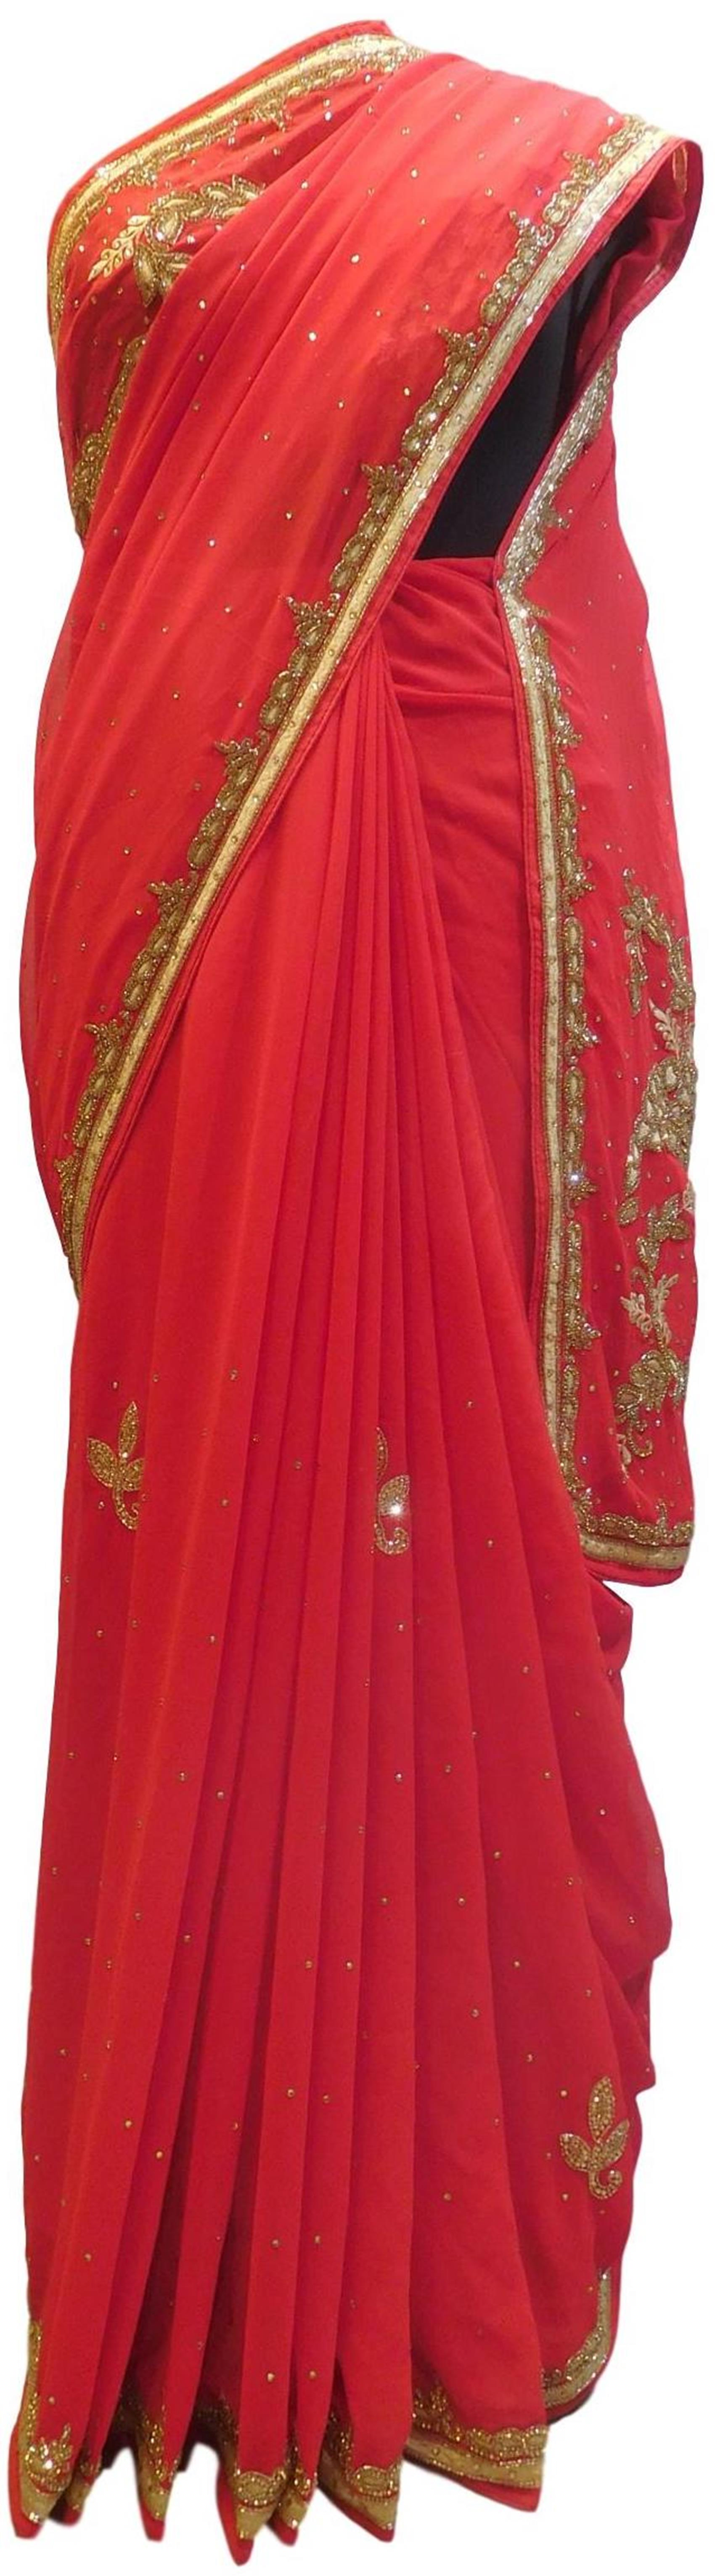 Red Designer Wedding Partywear Georgette Hand Embroidery Thread Cutdana Stone Work Kolkata Saree Sari E290